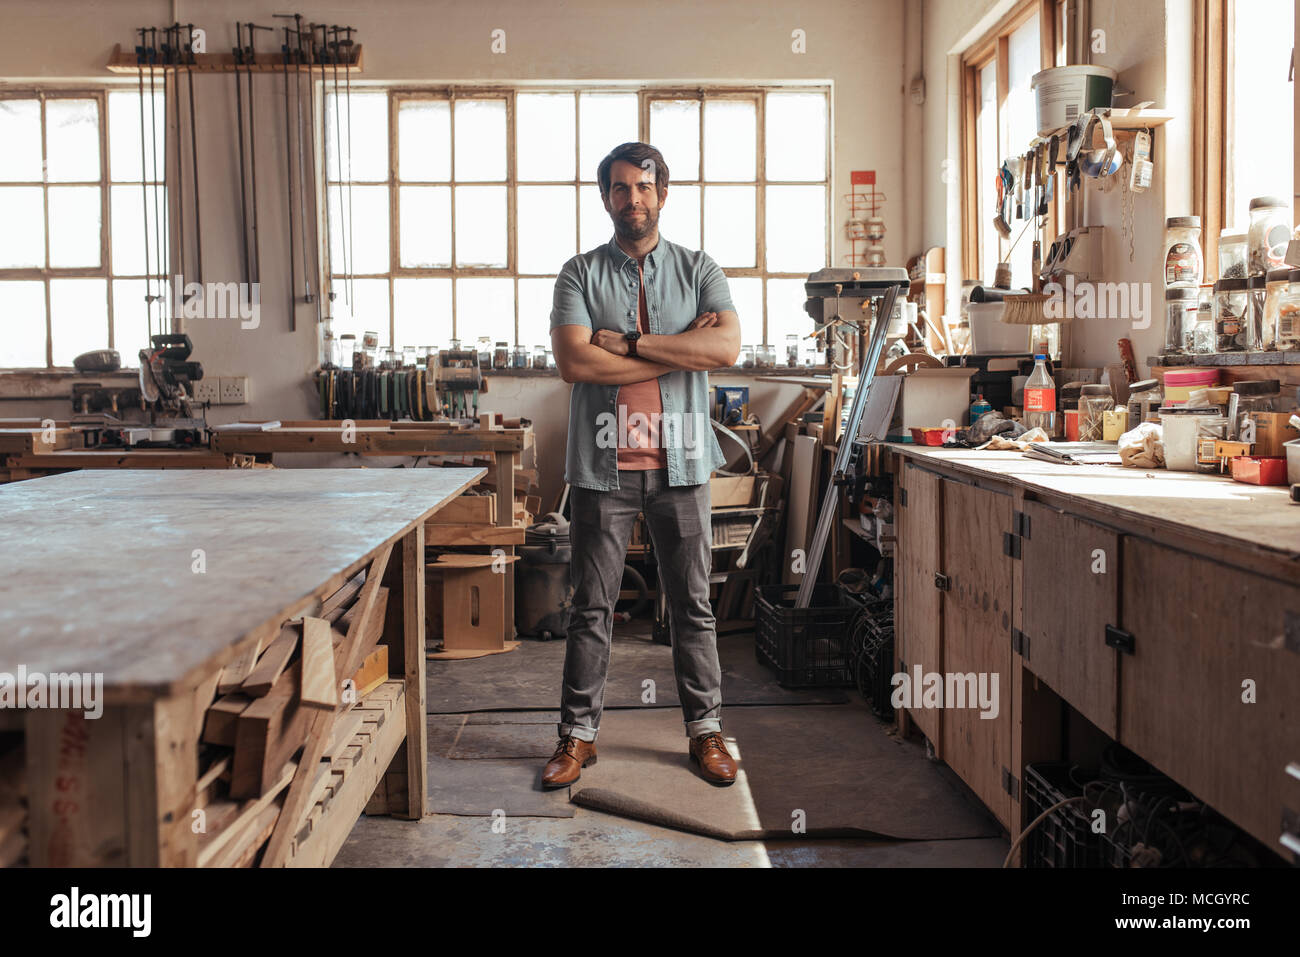 Portrait of a skilled young woodworker standing confidently with his arms crossed in his workshop full of carpentry tools - Stock Image